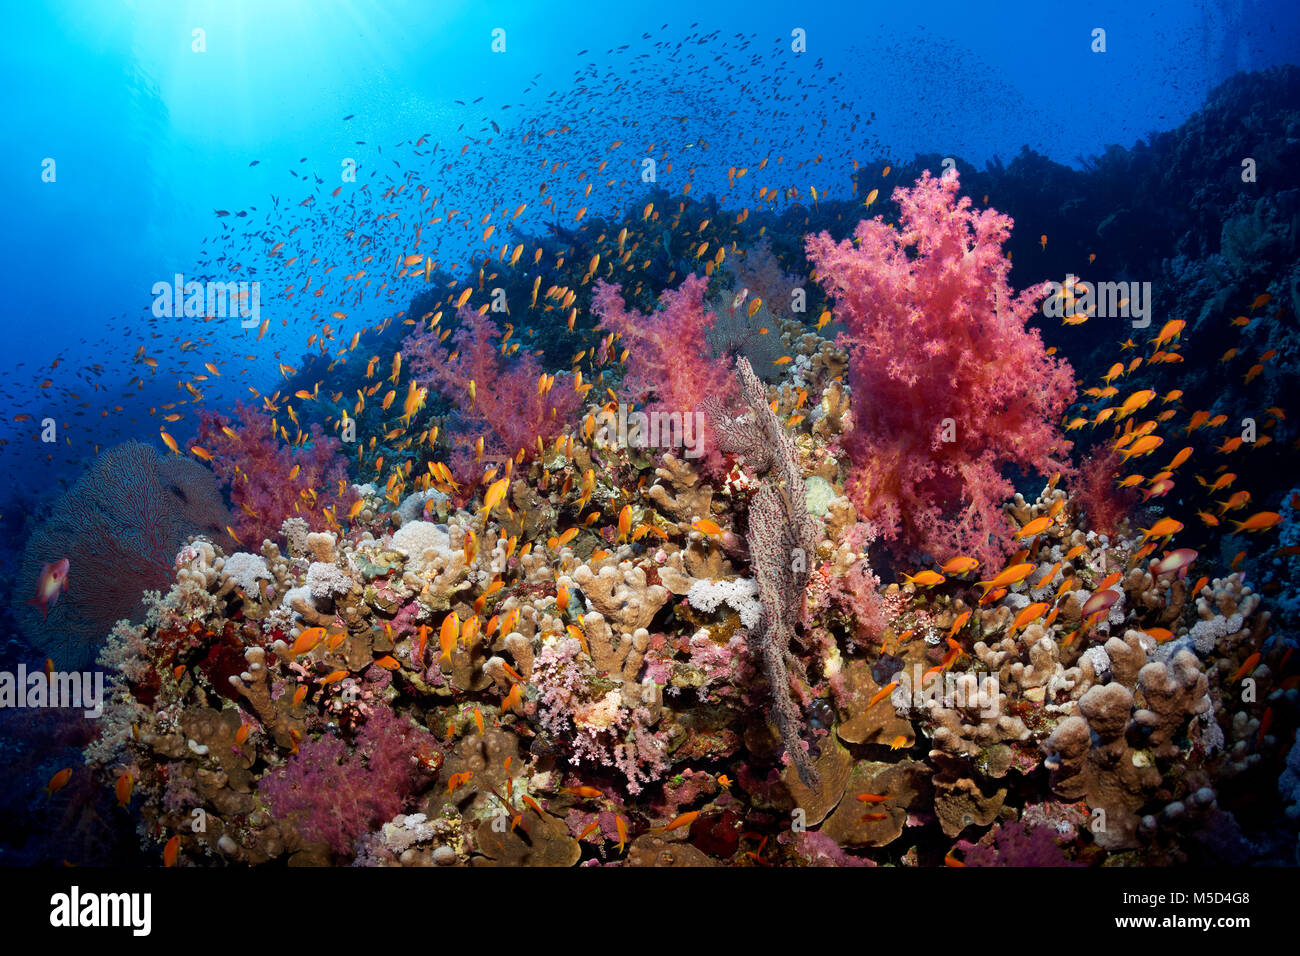 Coral reef, densely overgrown with stony corals (Scleractinia), Soft corals (Alcyonacea), flock of fish, Anthias - Stock Image